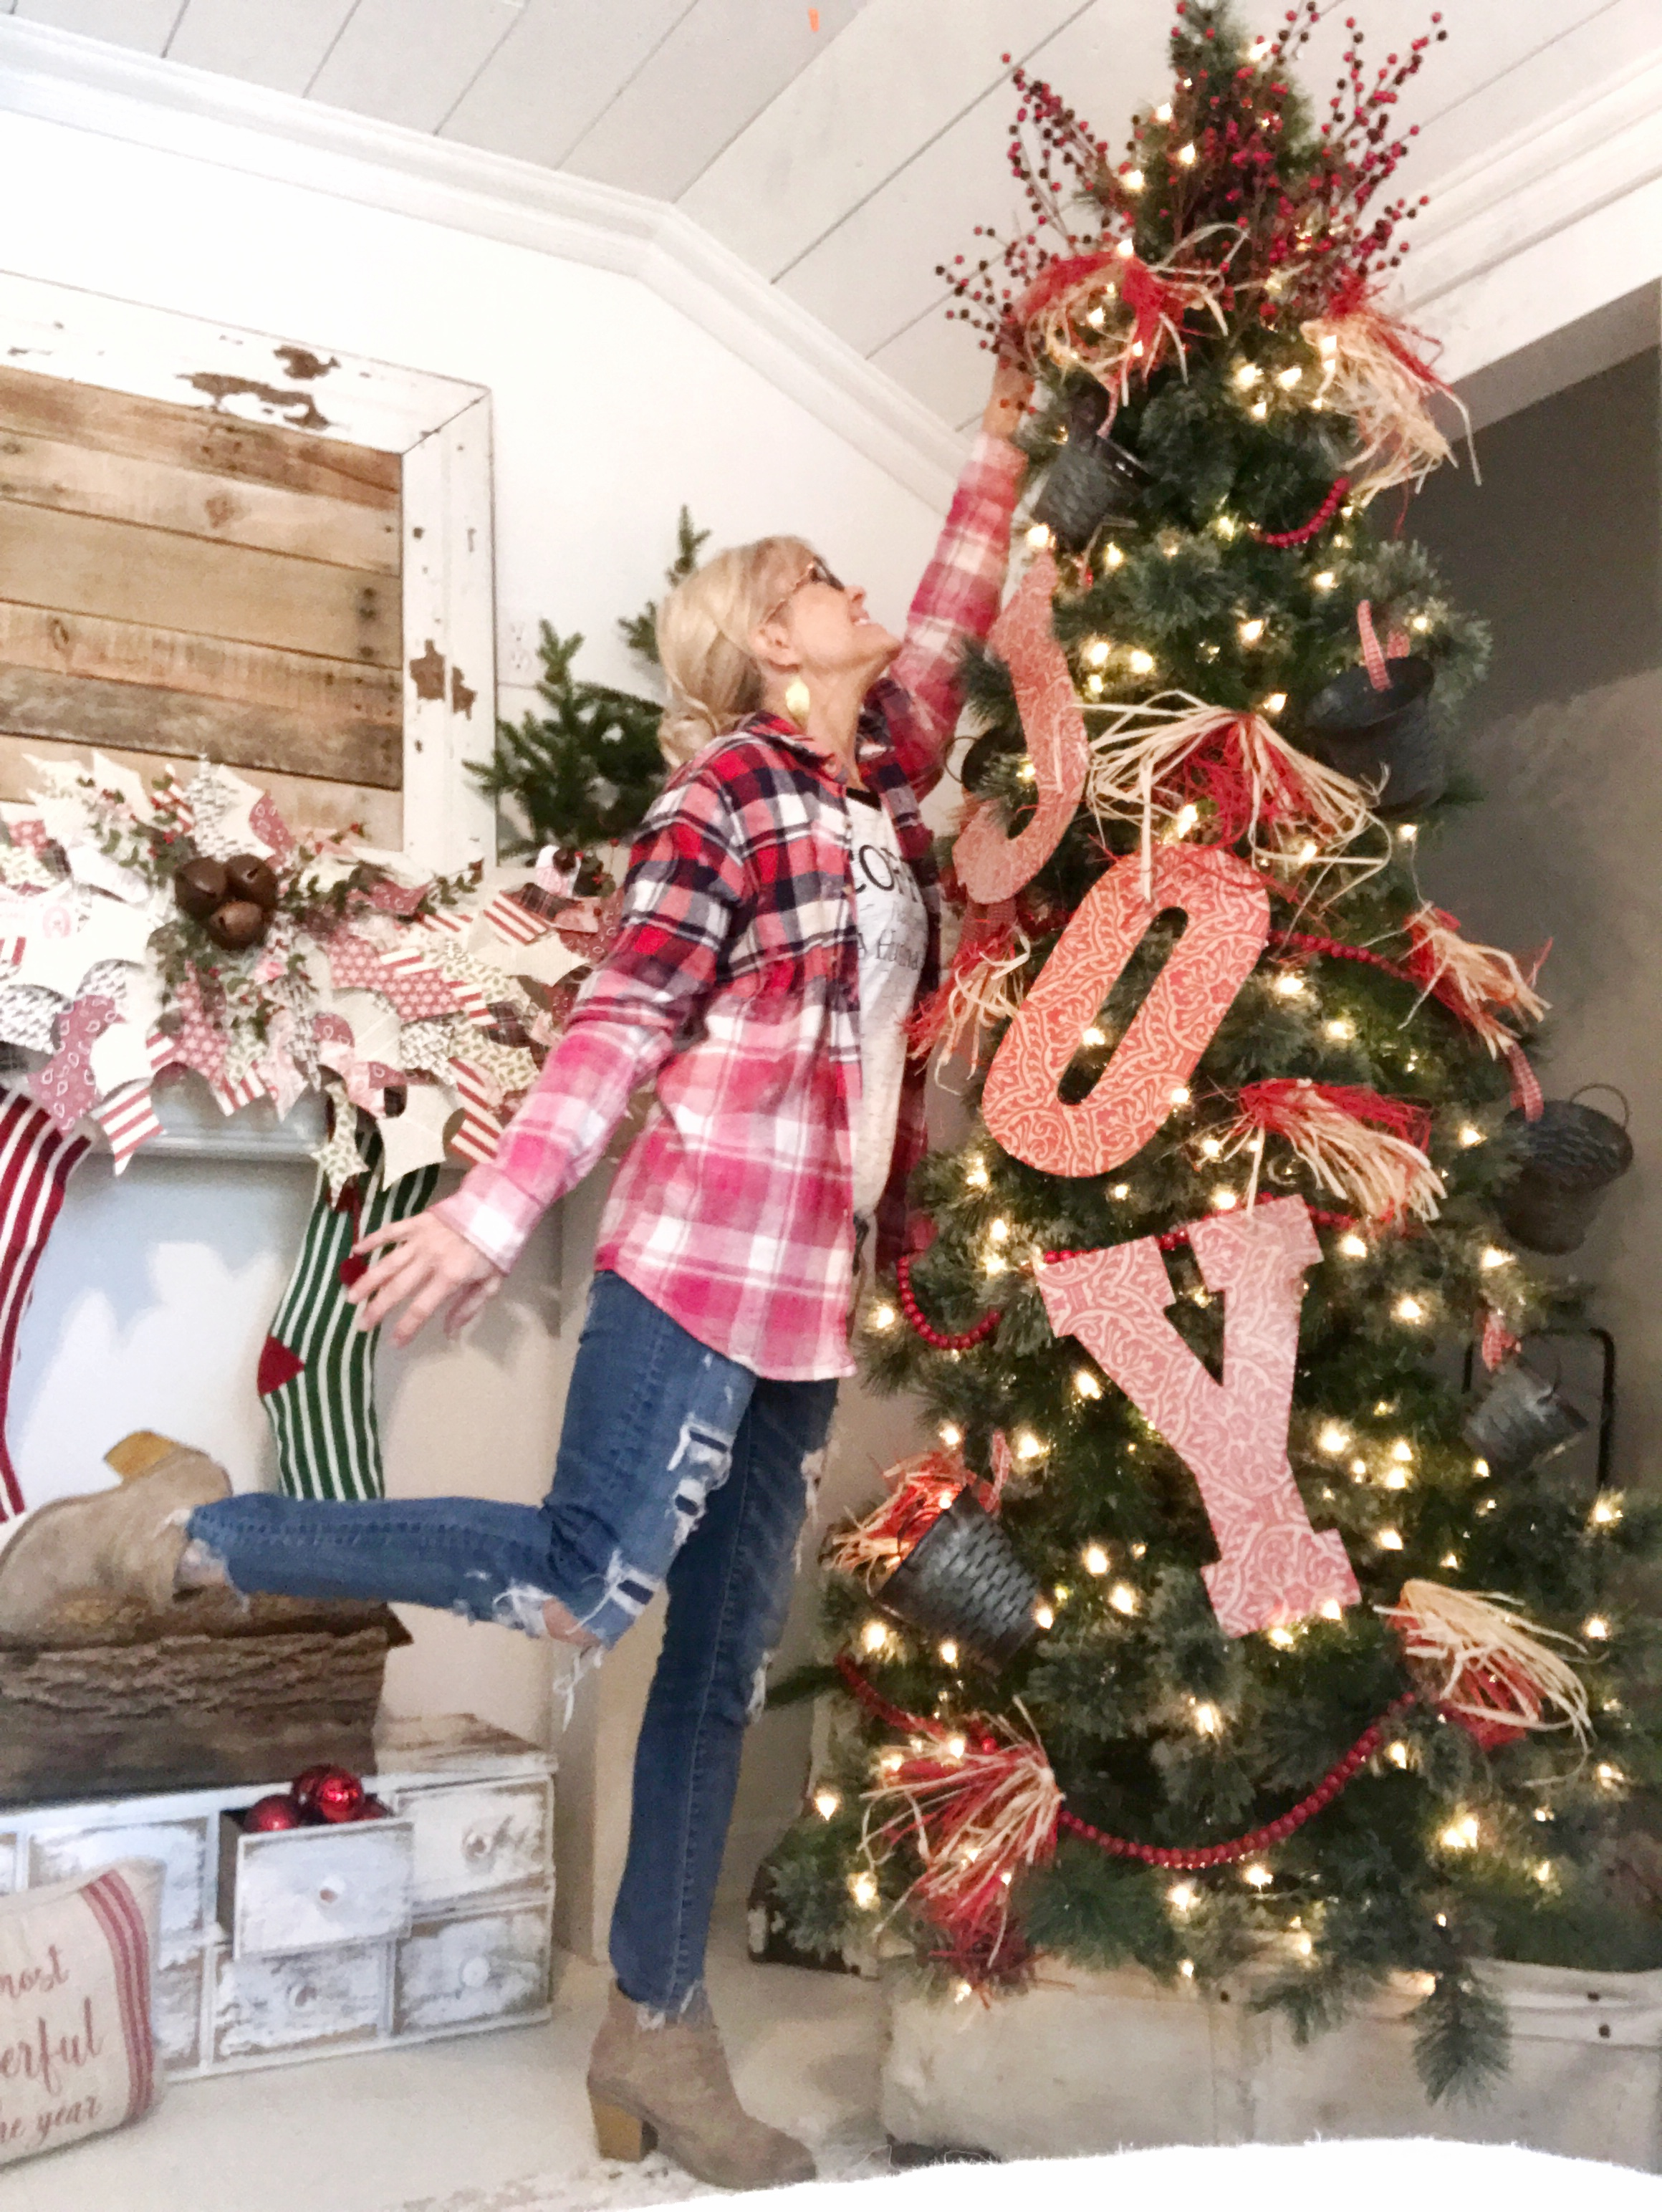 Garage Hobby Lobby Pickled Rose Decorations On Mytree This Year Represent My Things Can Be Easily Found At A Farmhouse Items That I Love To Surround Myself curbed Hobby Lobby Christmas Decorations